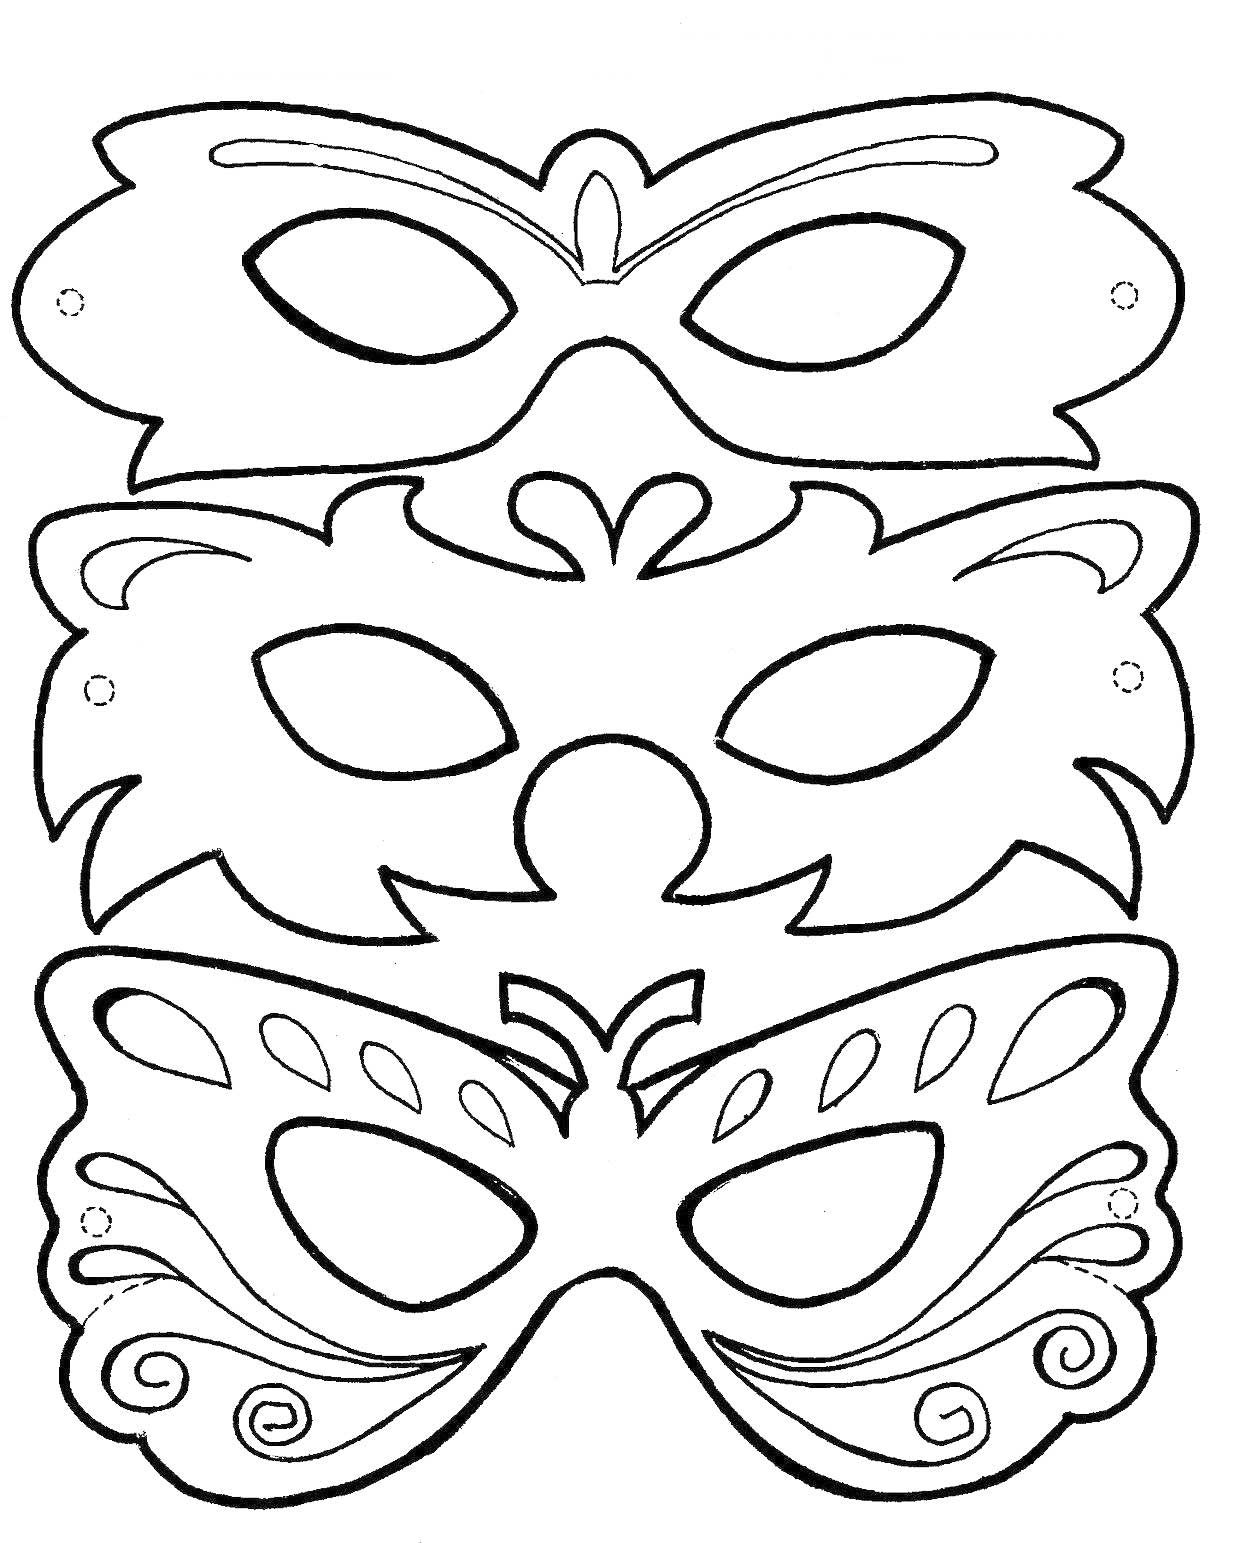 Máscaras De Carnaval Decor Pinterest Carnival Mask Template